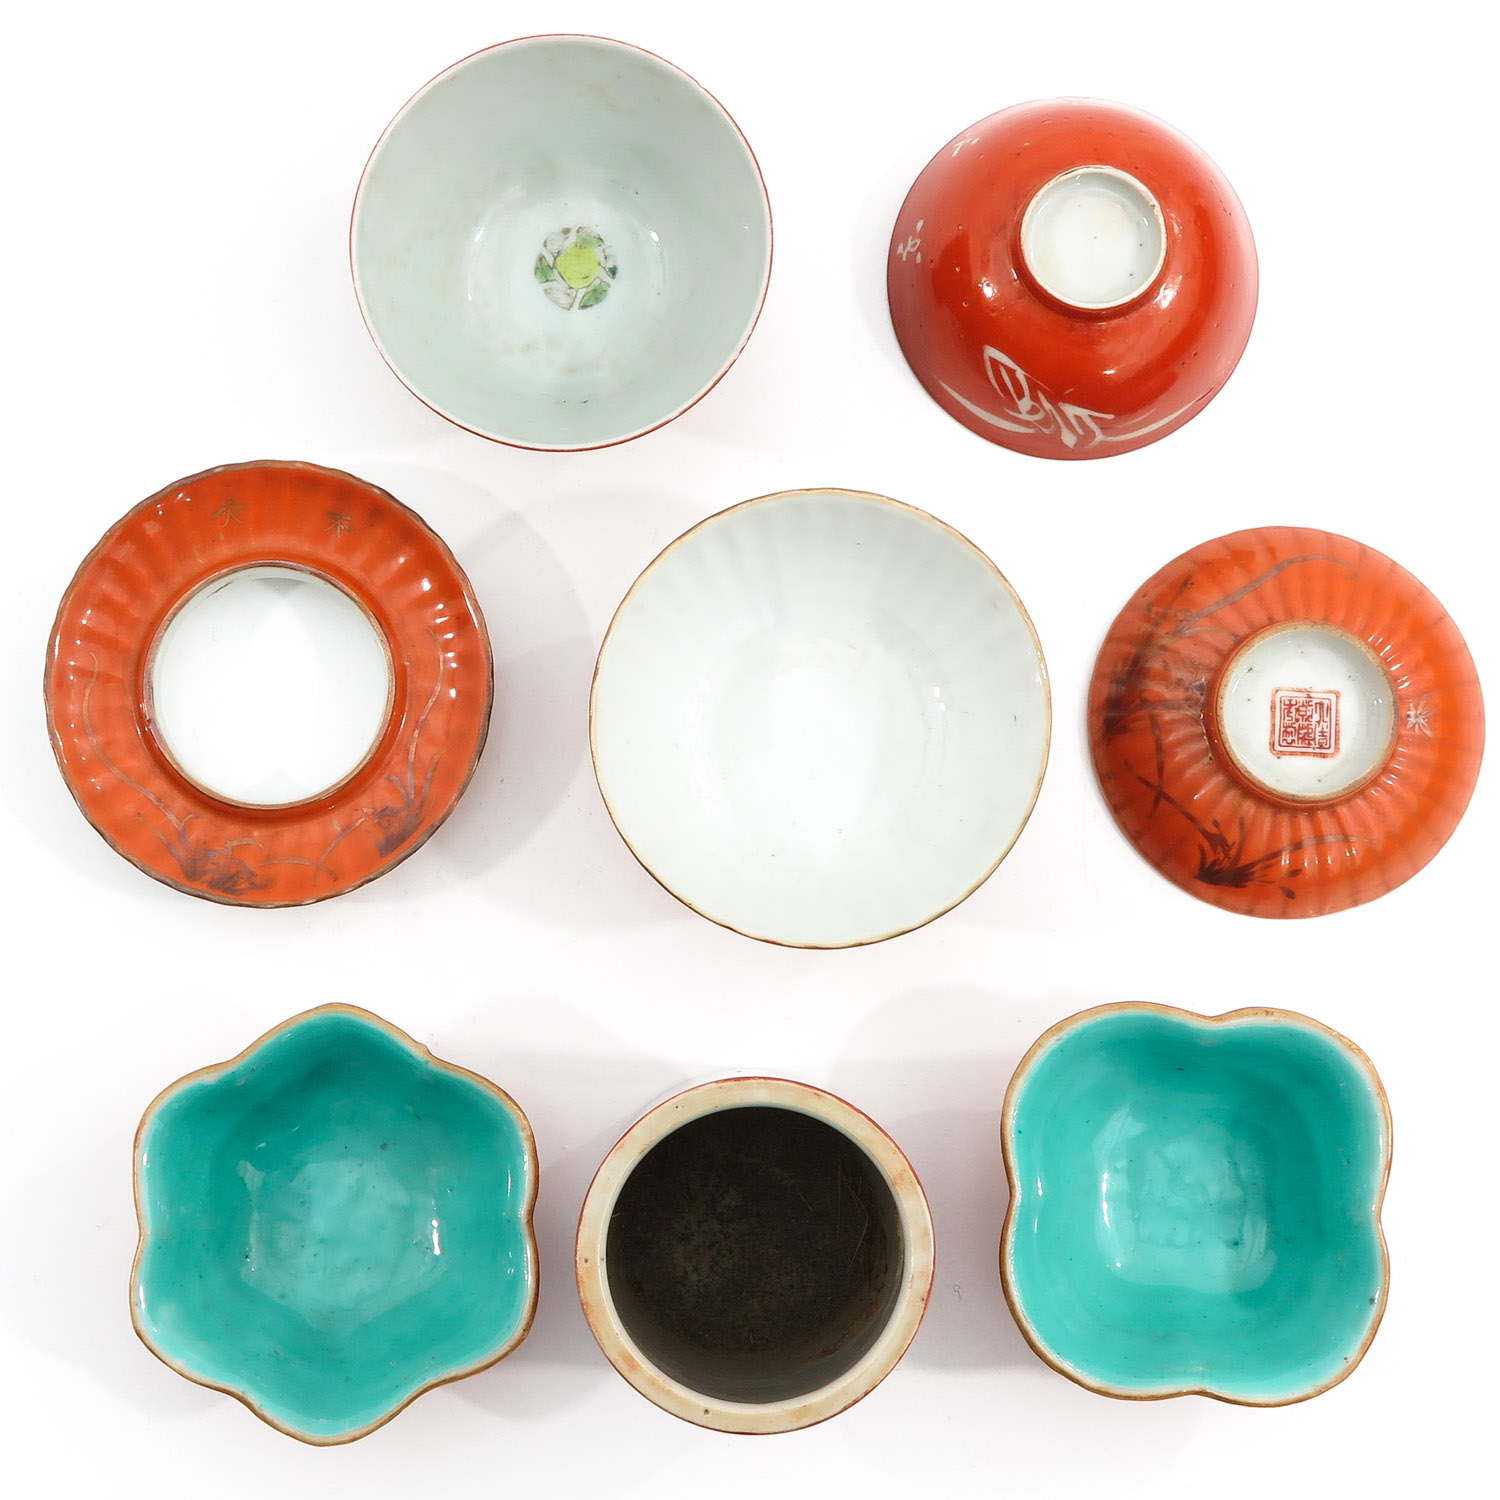 A Diverse Collection of Porcelain - Image 5 of 9